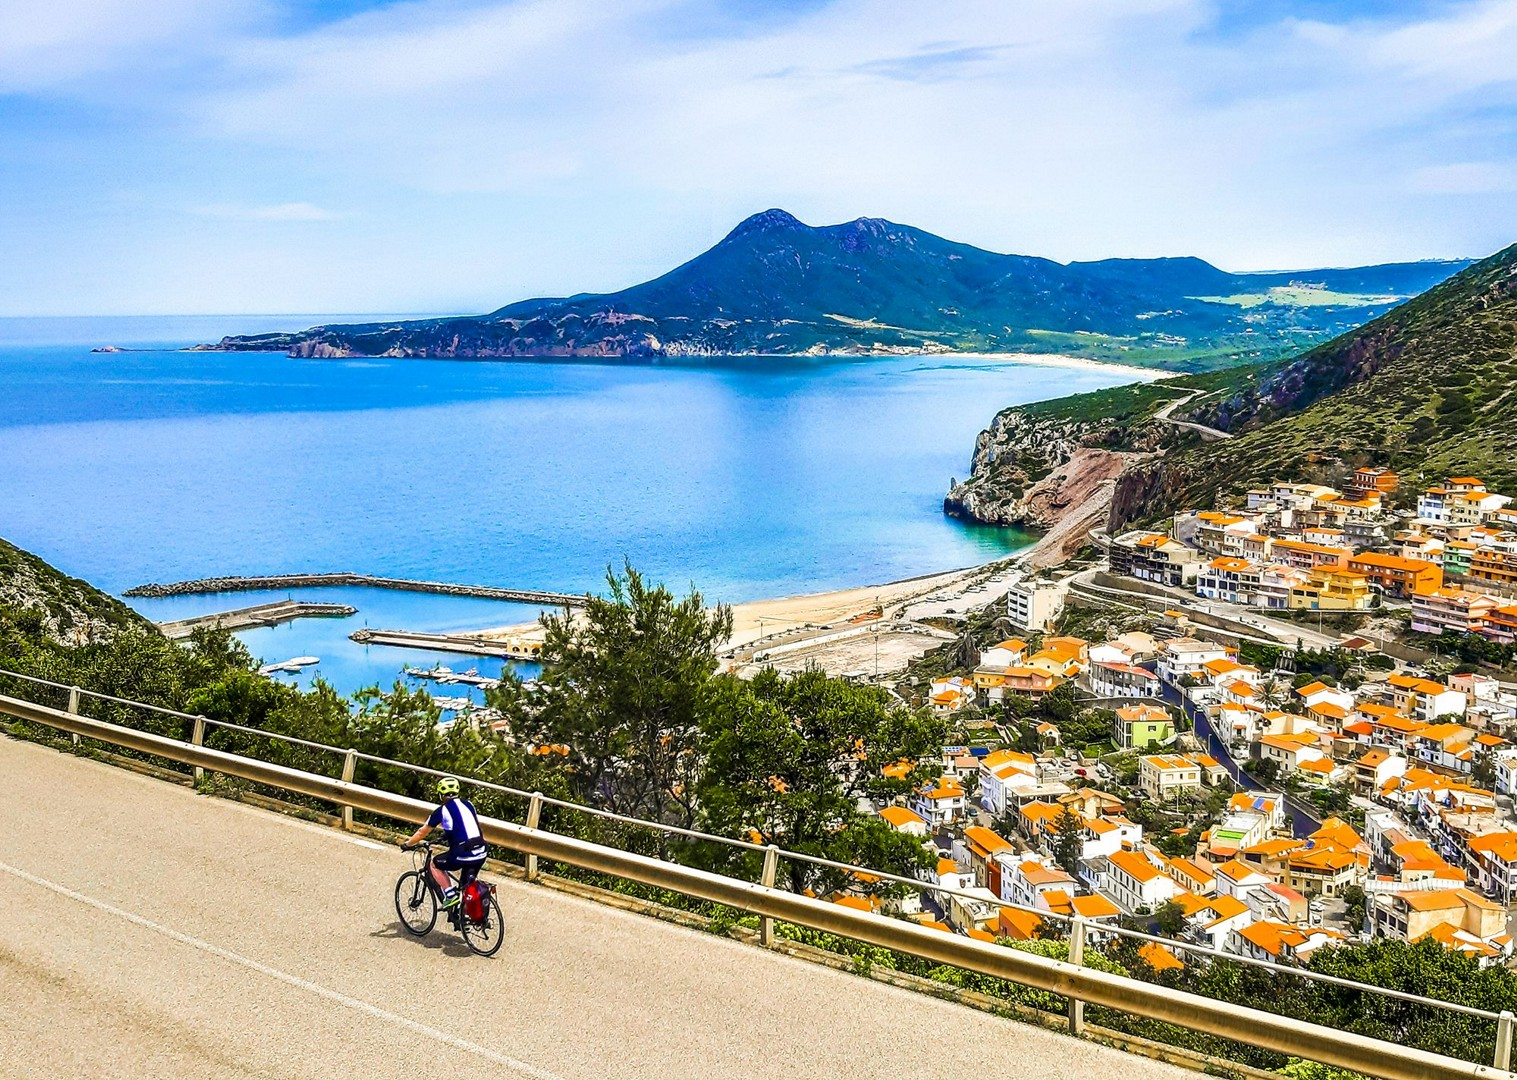 leisure-cycling-island-flavours-italy-sardinia-self-guided.jpg - Italy - Sardinia - Island Flavours - Self-Guided Leisure Cycling Holiday - Italia Leisure and Family Cycling